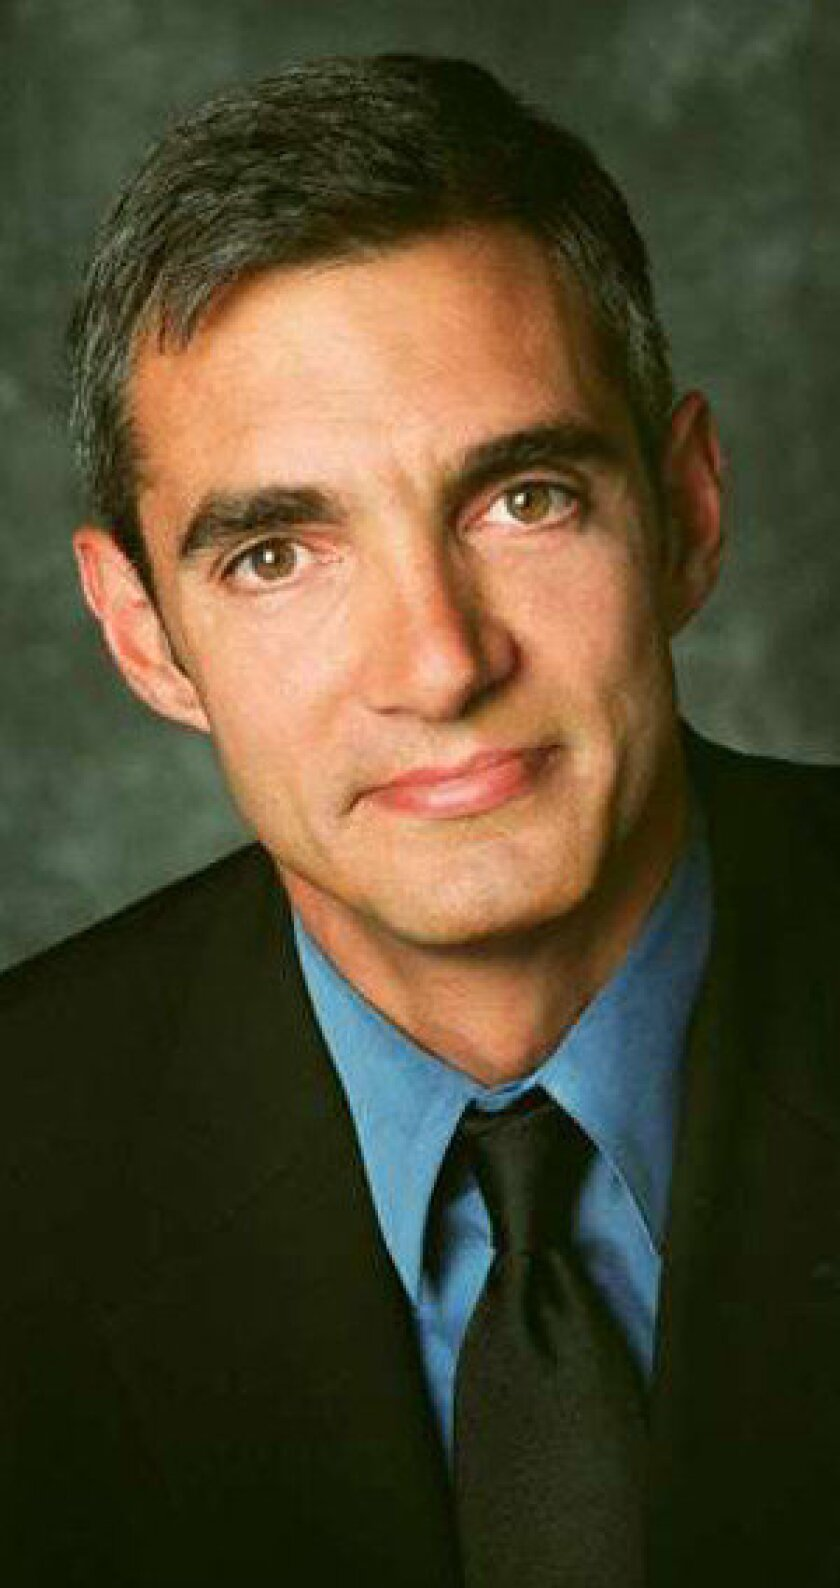 Peter Liguori is expected to be the new chief executive of Tribune Co.